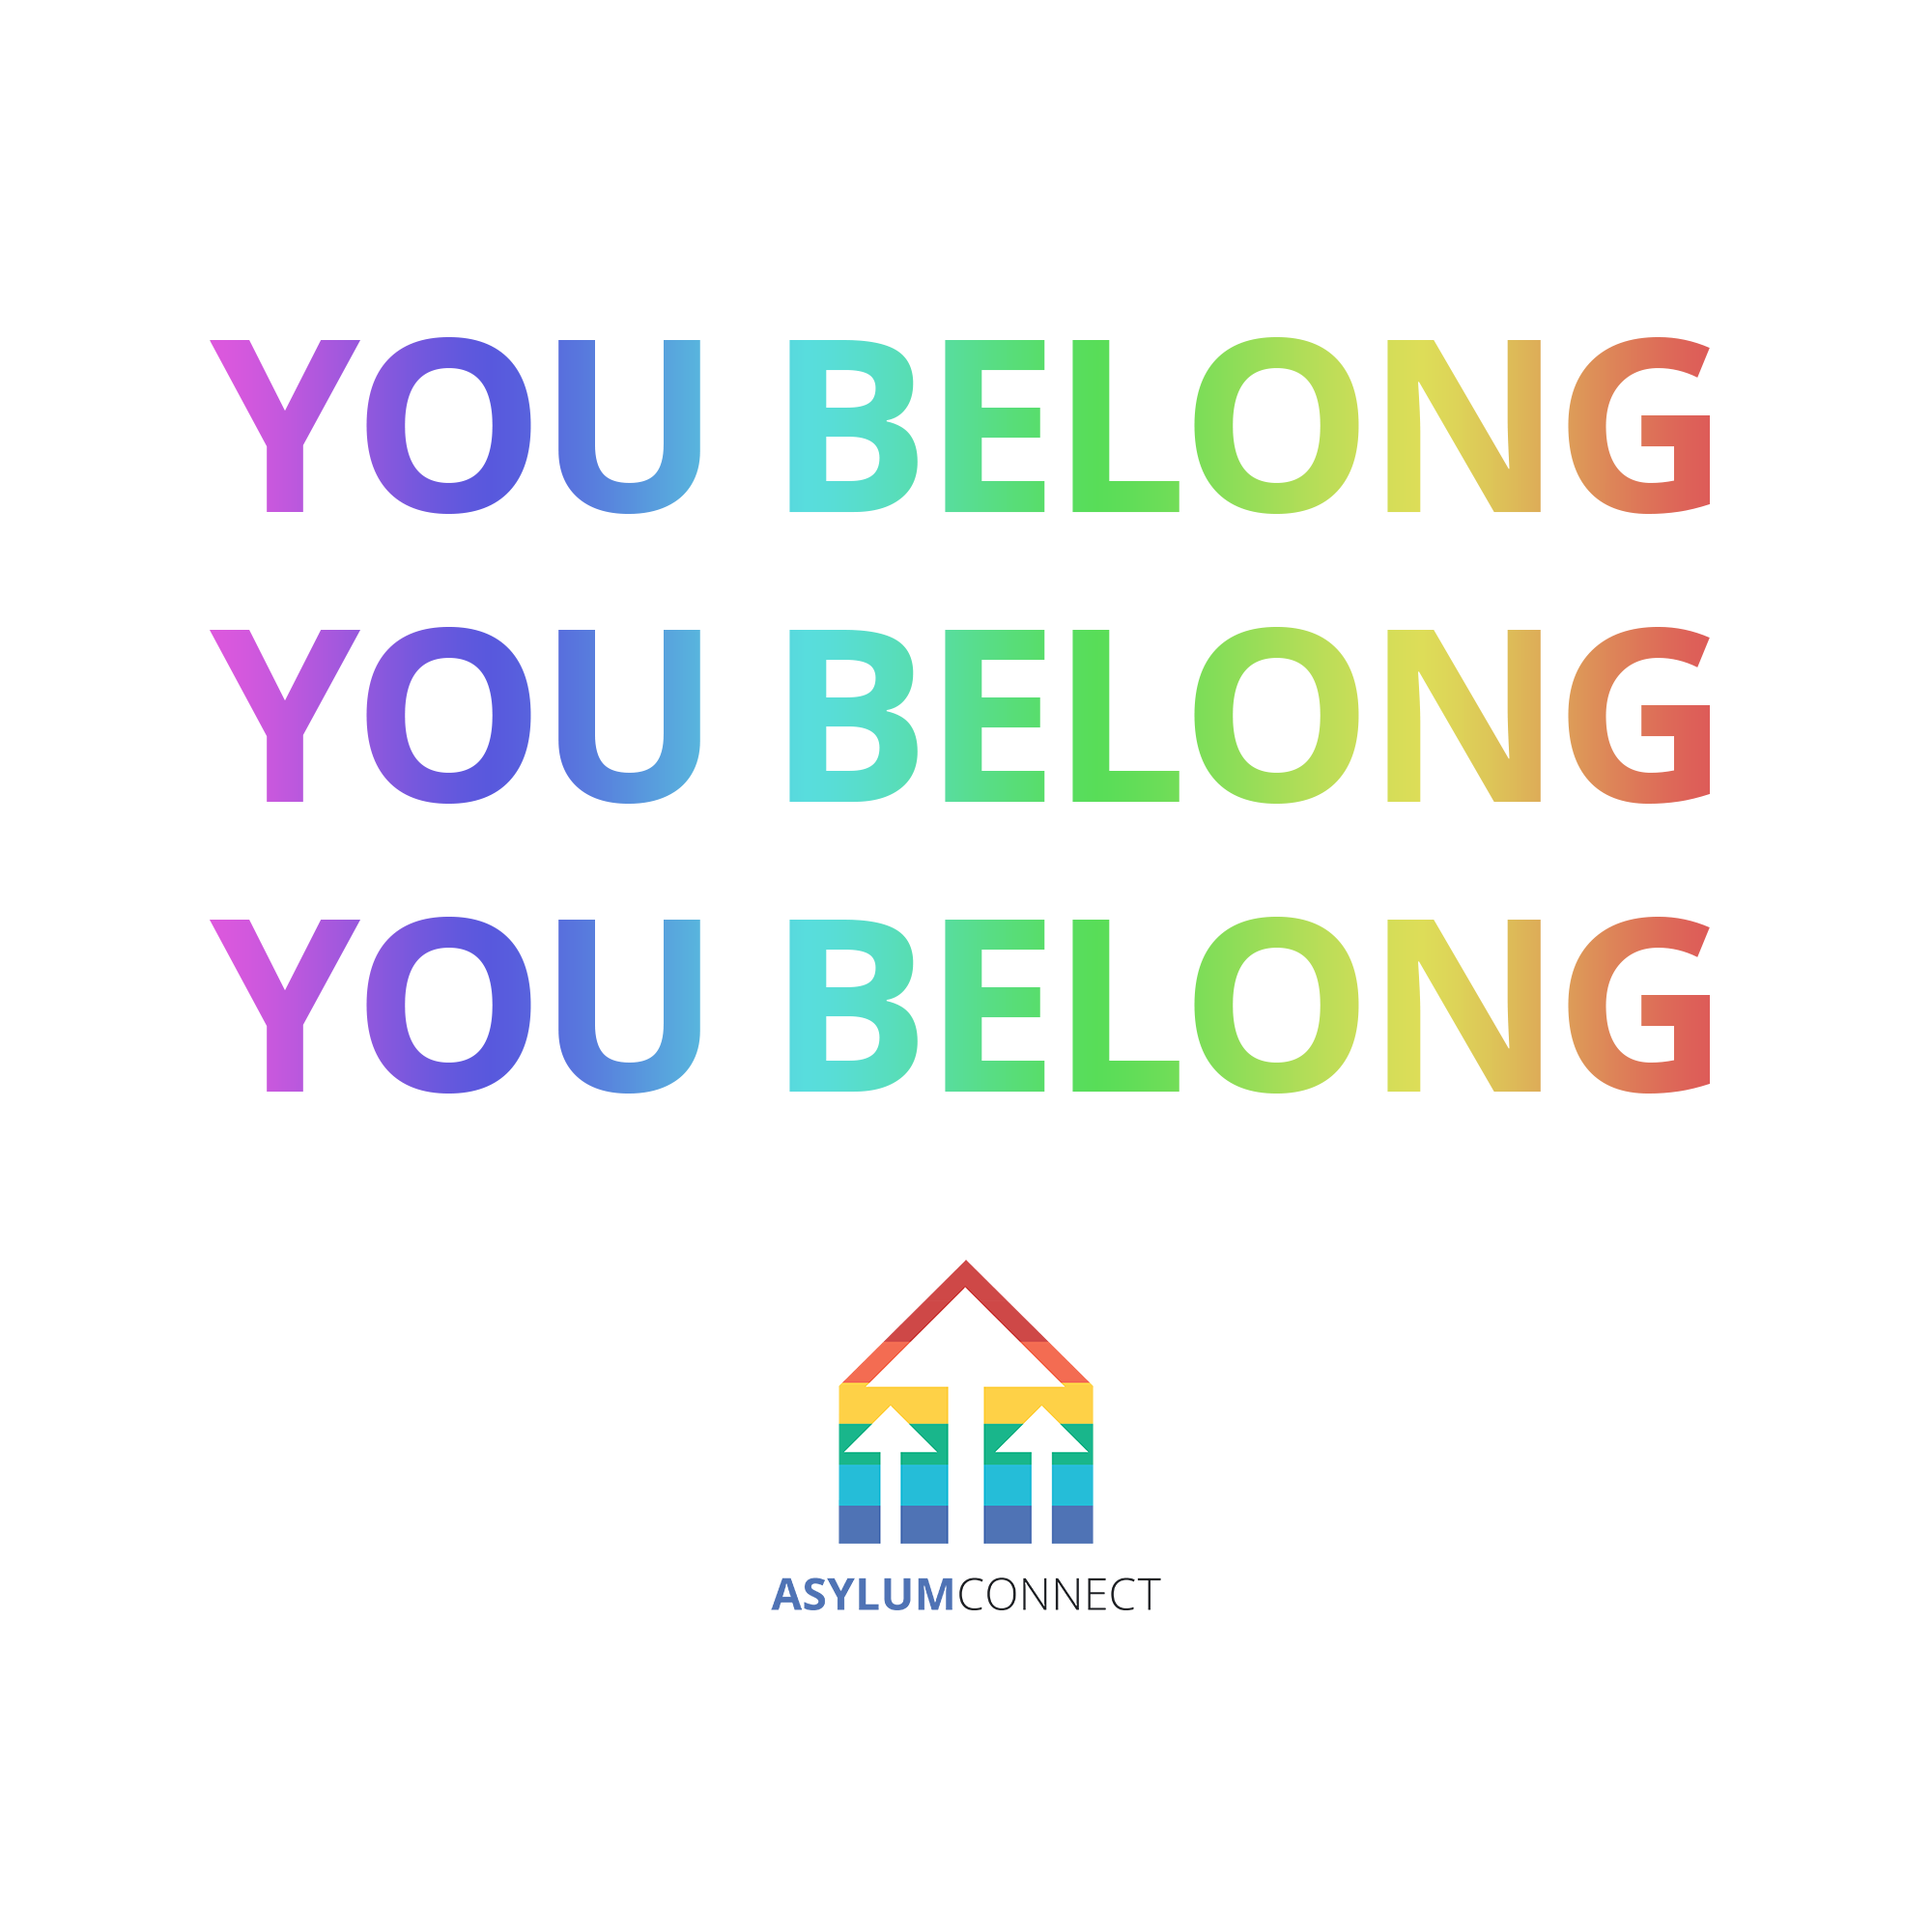 youbelongicon (2).png